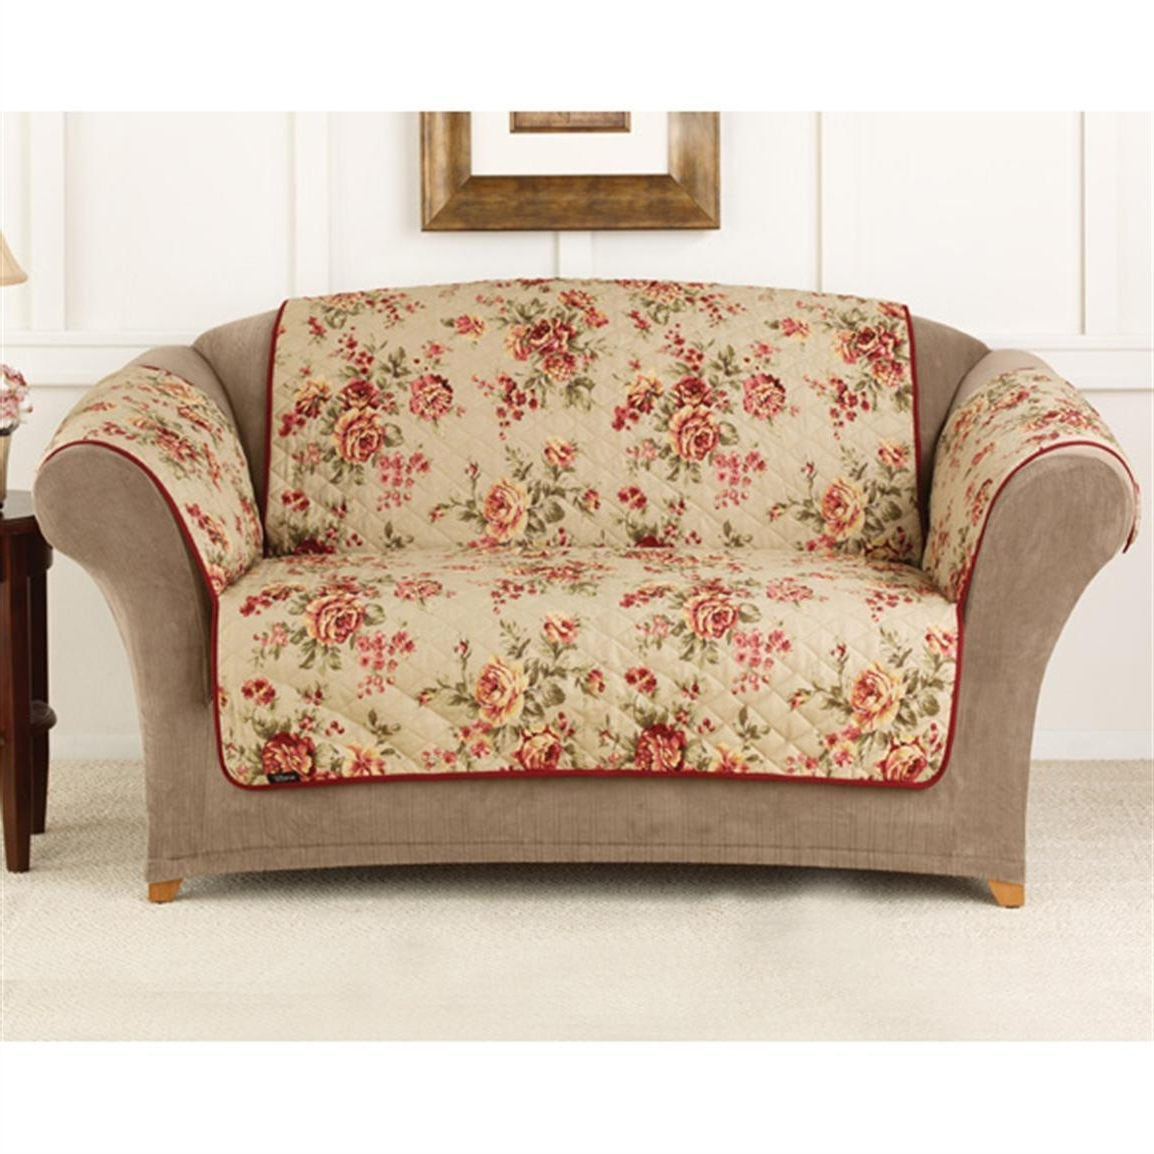 Popular Furniture : Covers For Sofas And Couch Sure Fit Lexington Floral Intended For Chintz Sofas (View 13 of 20)